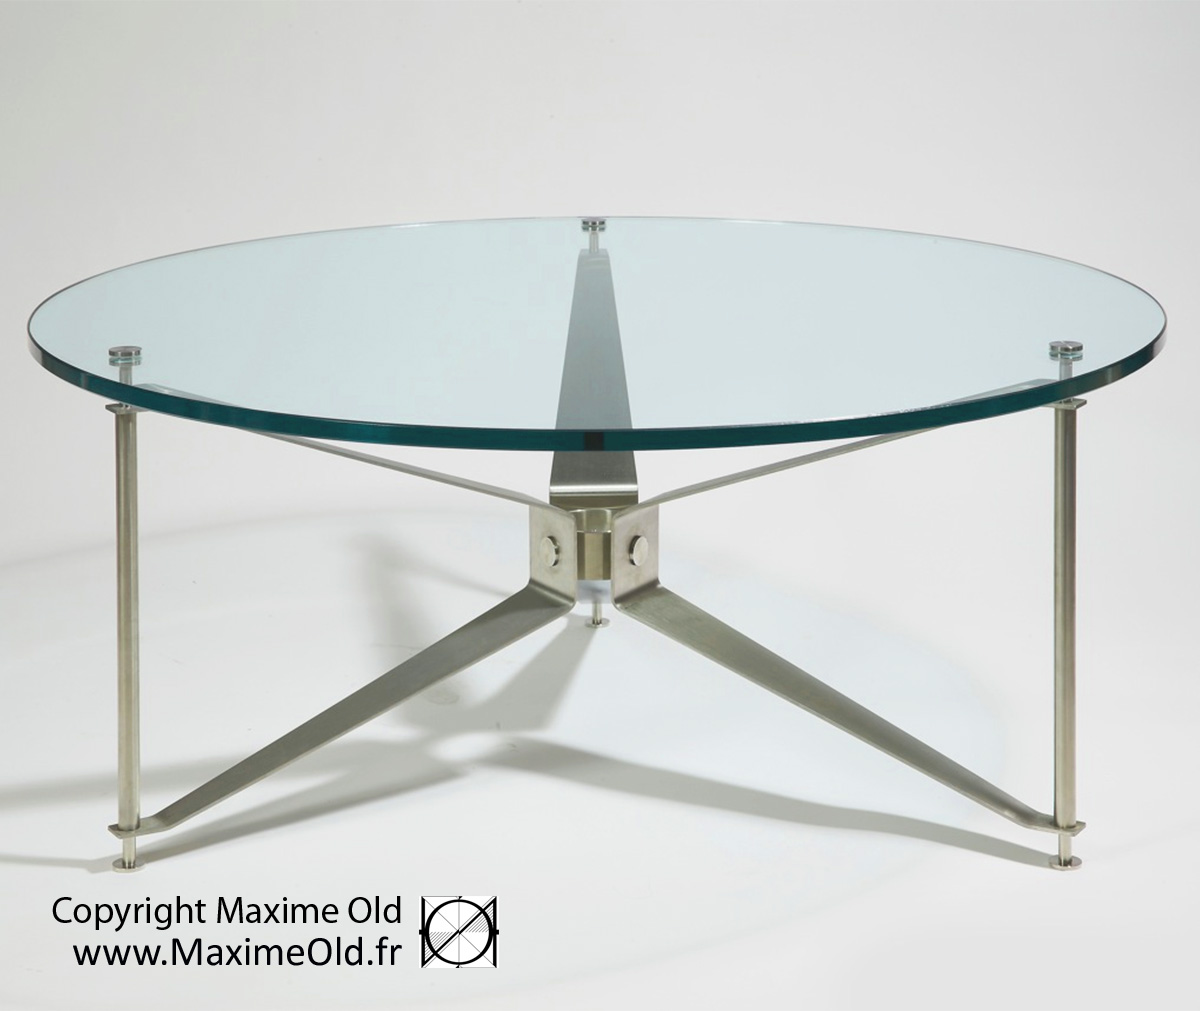 Coffee-Side Tables: Maxime Old Paquebot France Propeller Table